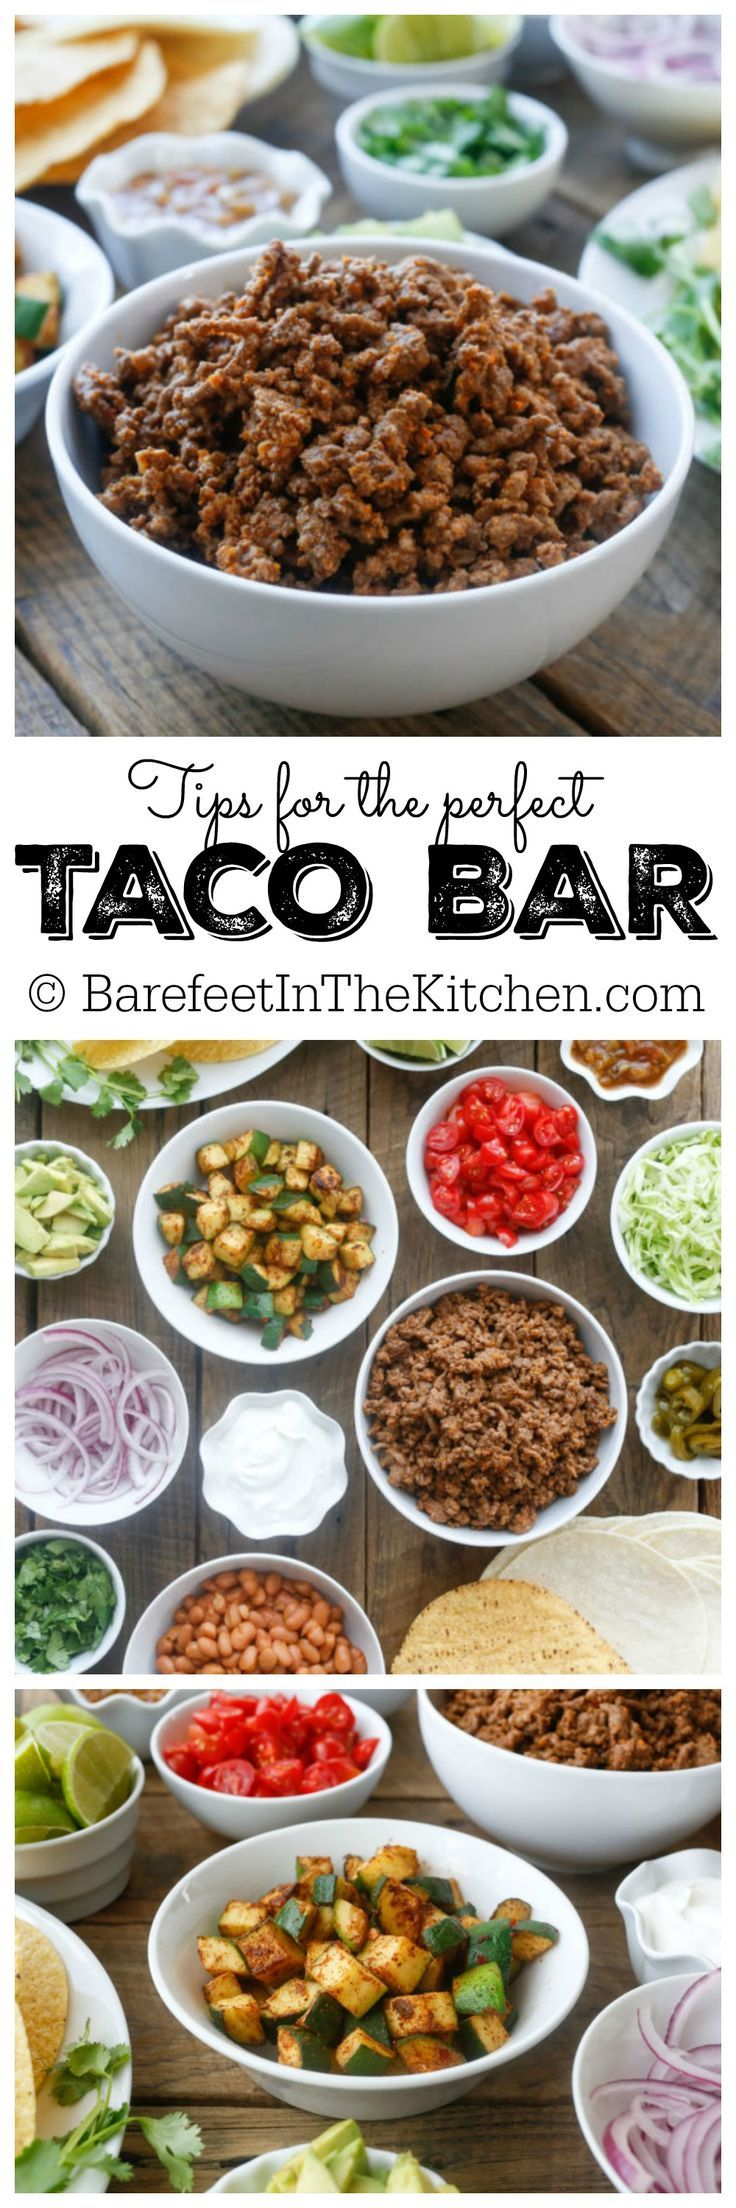 Good Taco Dinner Party Ideas Part - 14: Youu0027re Gonna Want These Tips And Recipes For Your Next Diy Taco Bar Party!  Perfect For Gathering With Your Friends On Cinco De Mayo Or Any Taco Tueu2026